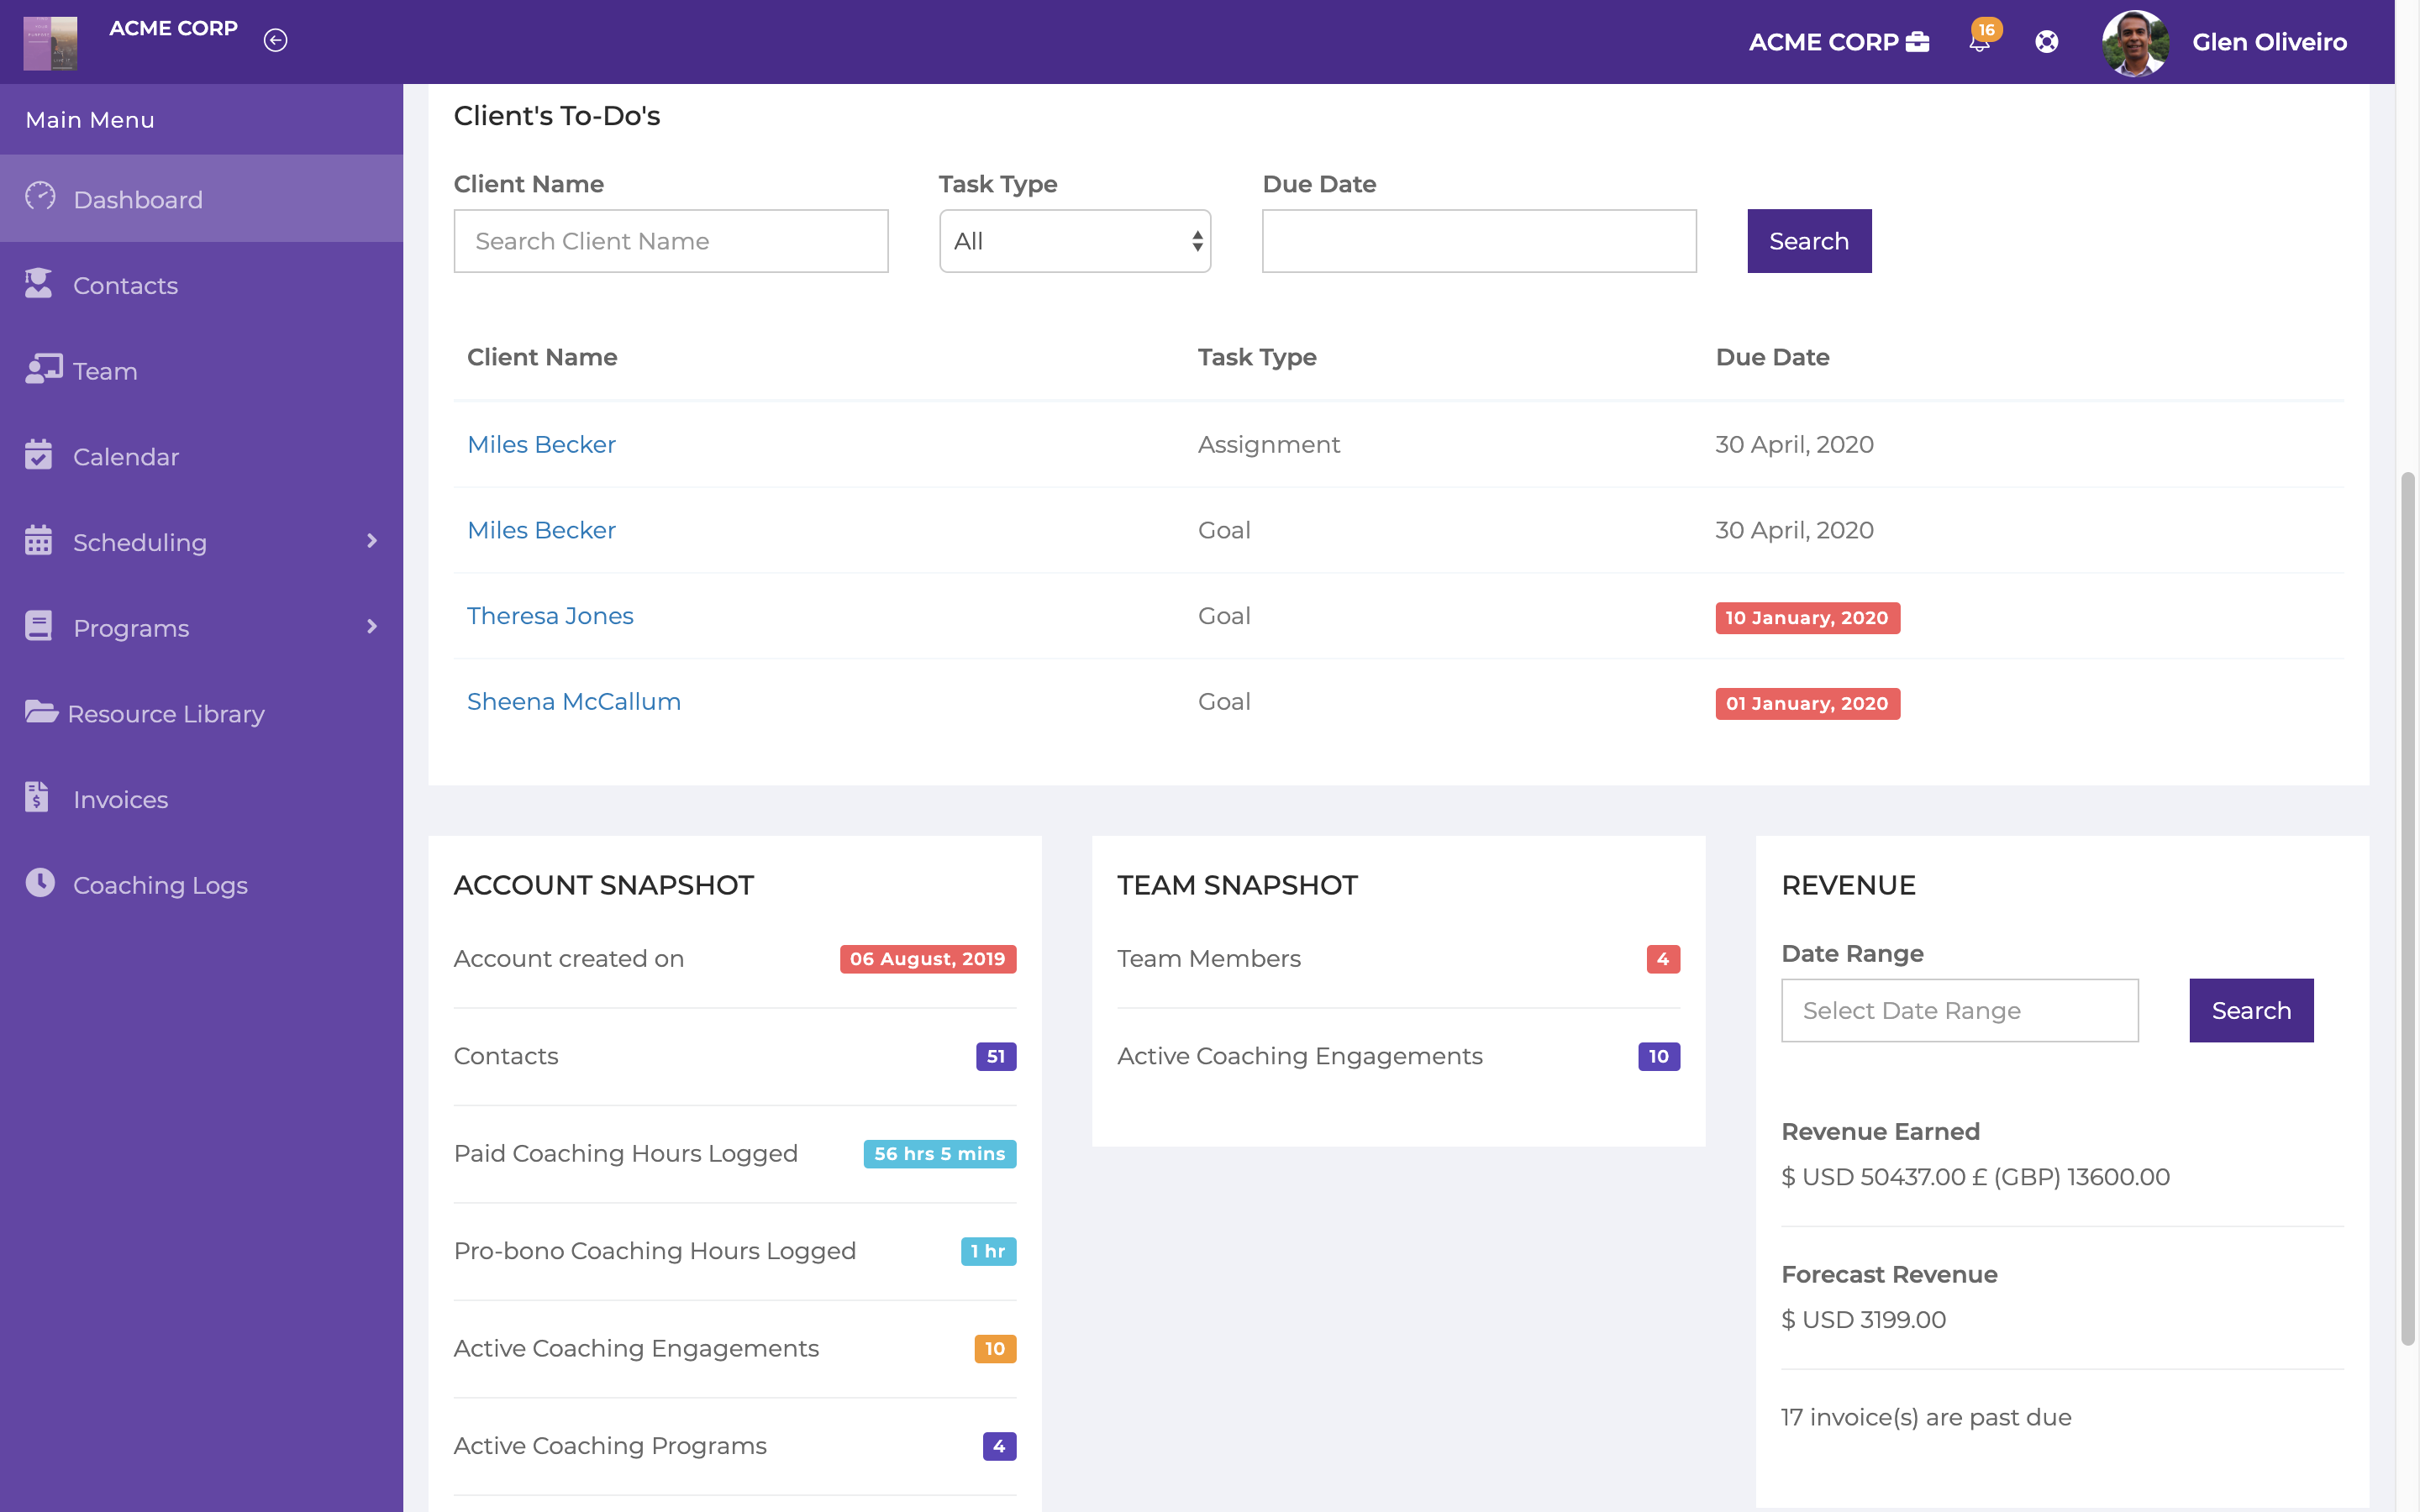 Dashboard gives you a quick view of upcoming appointments, client's to-do list, your coaching hours and revenue earned.